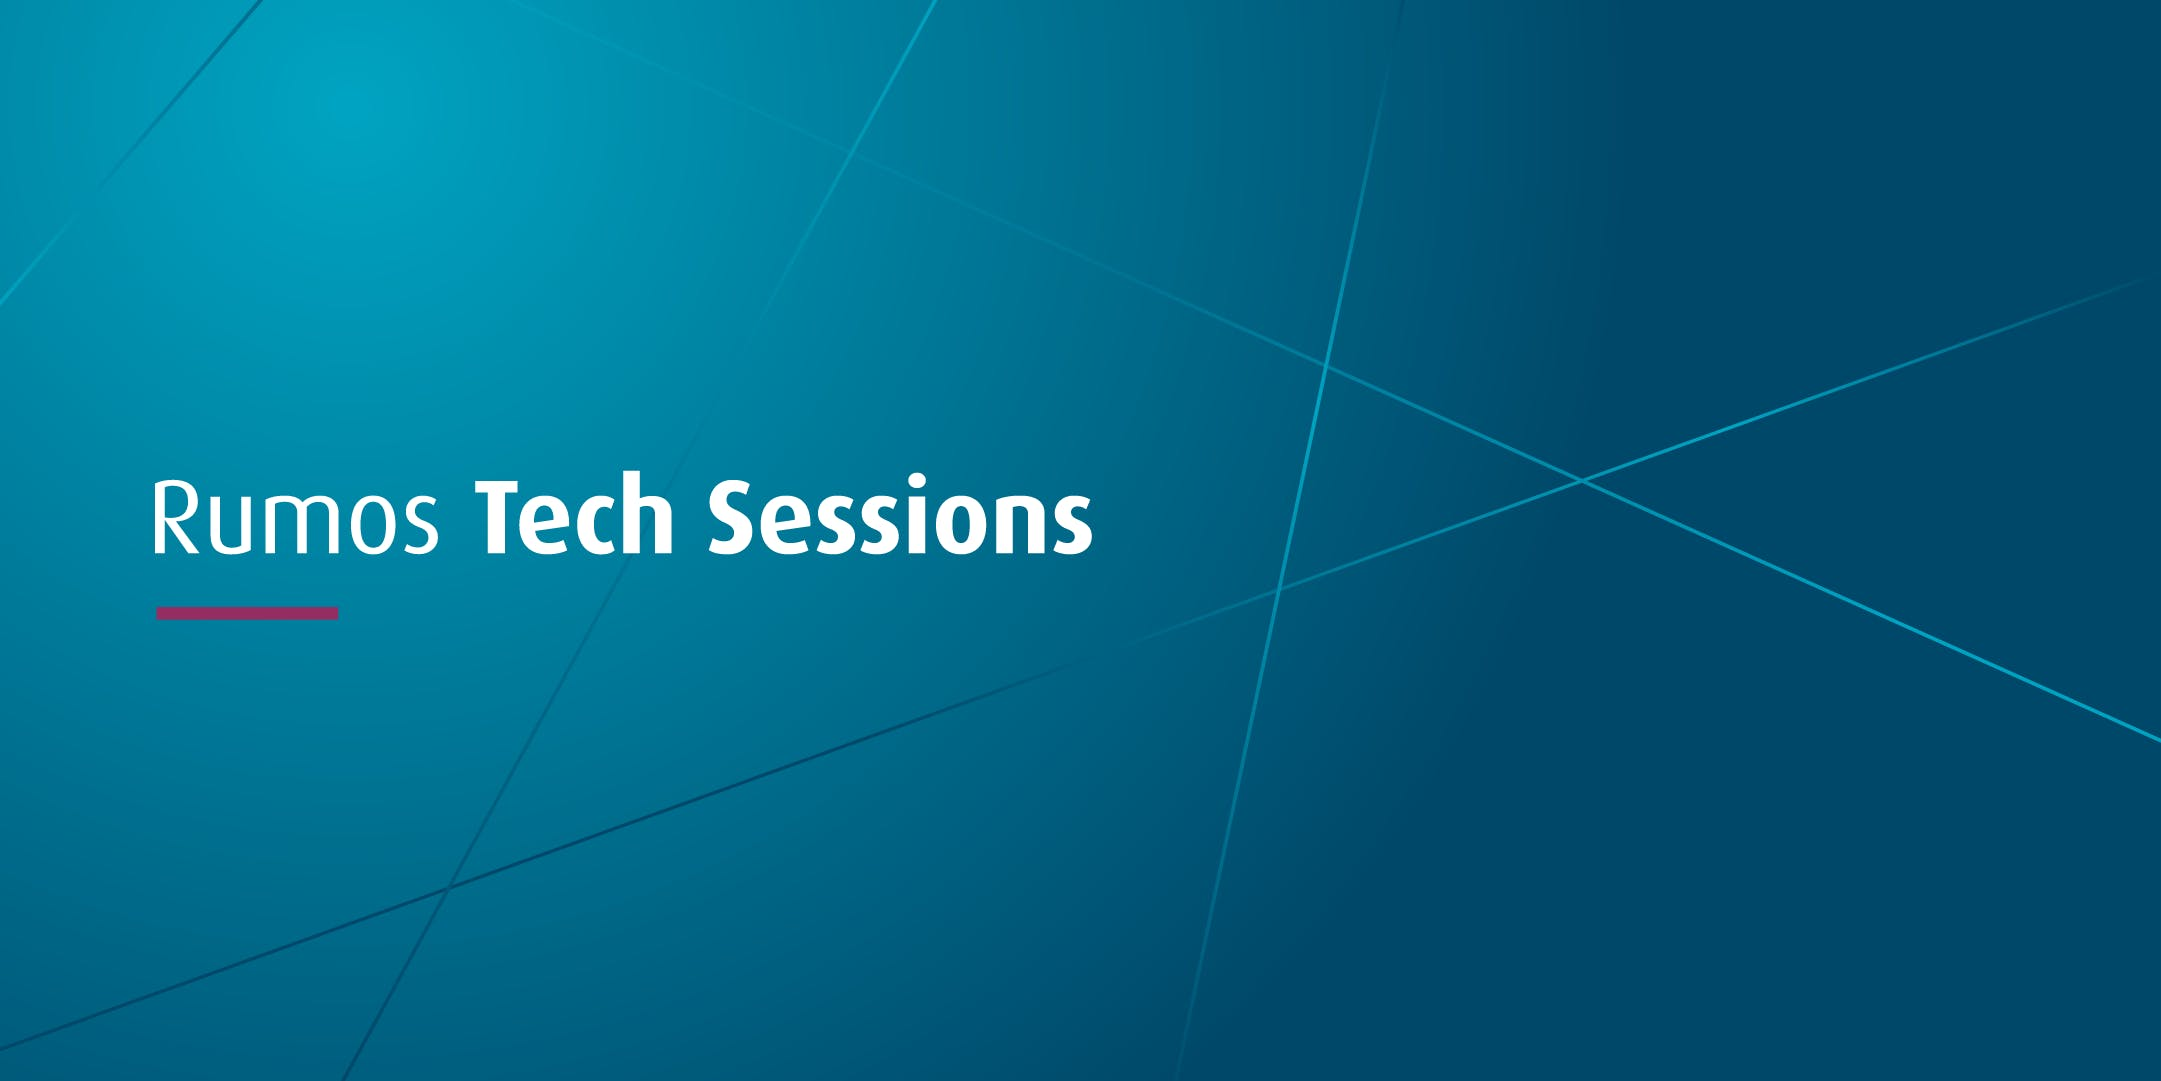 "Rumos Tech Sessions ""Keeping up with Dev & Op"